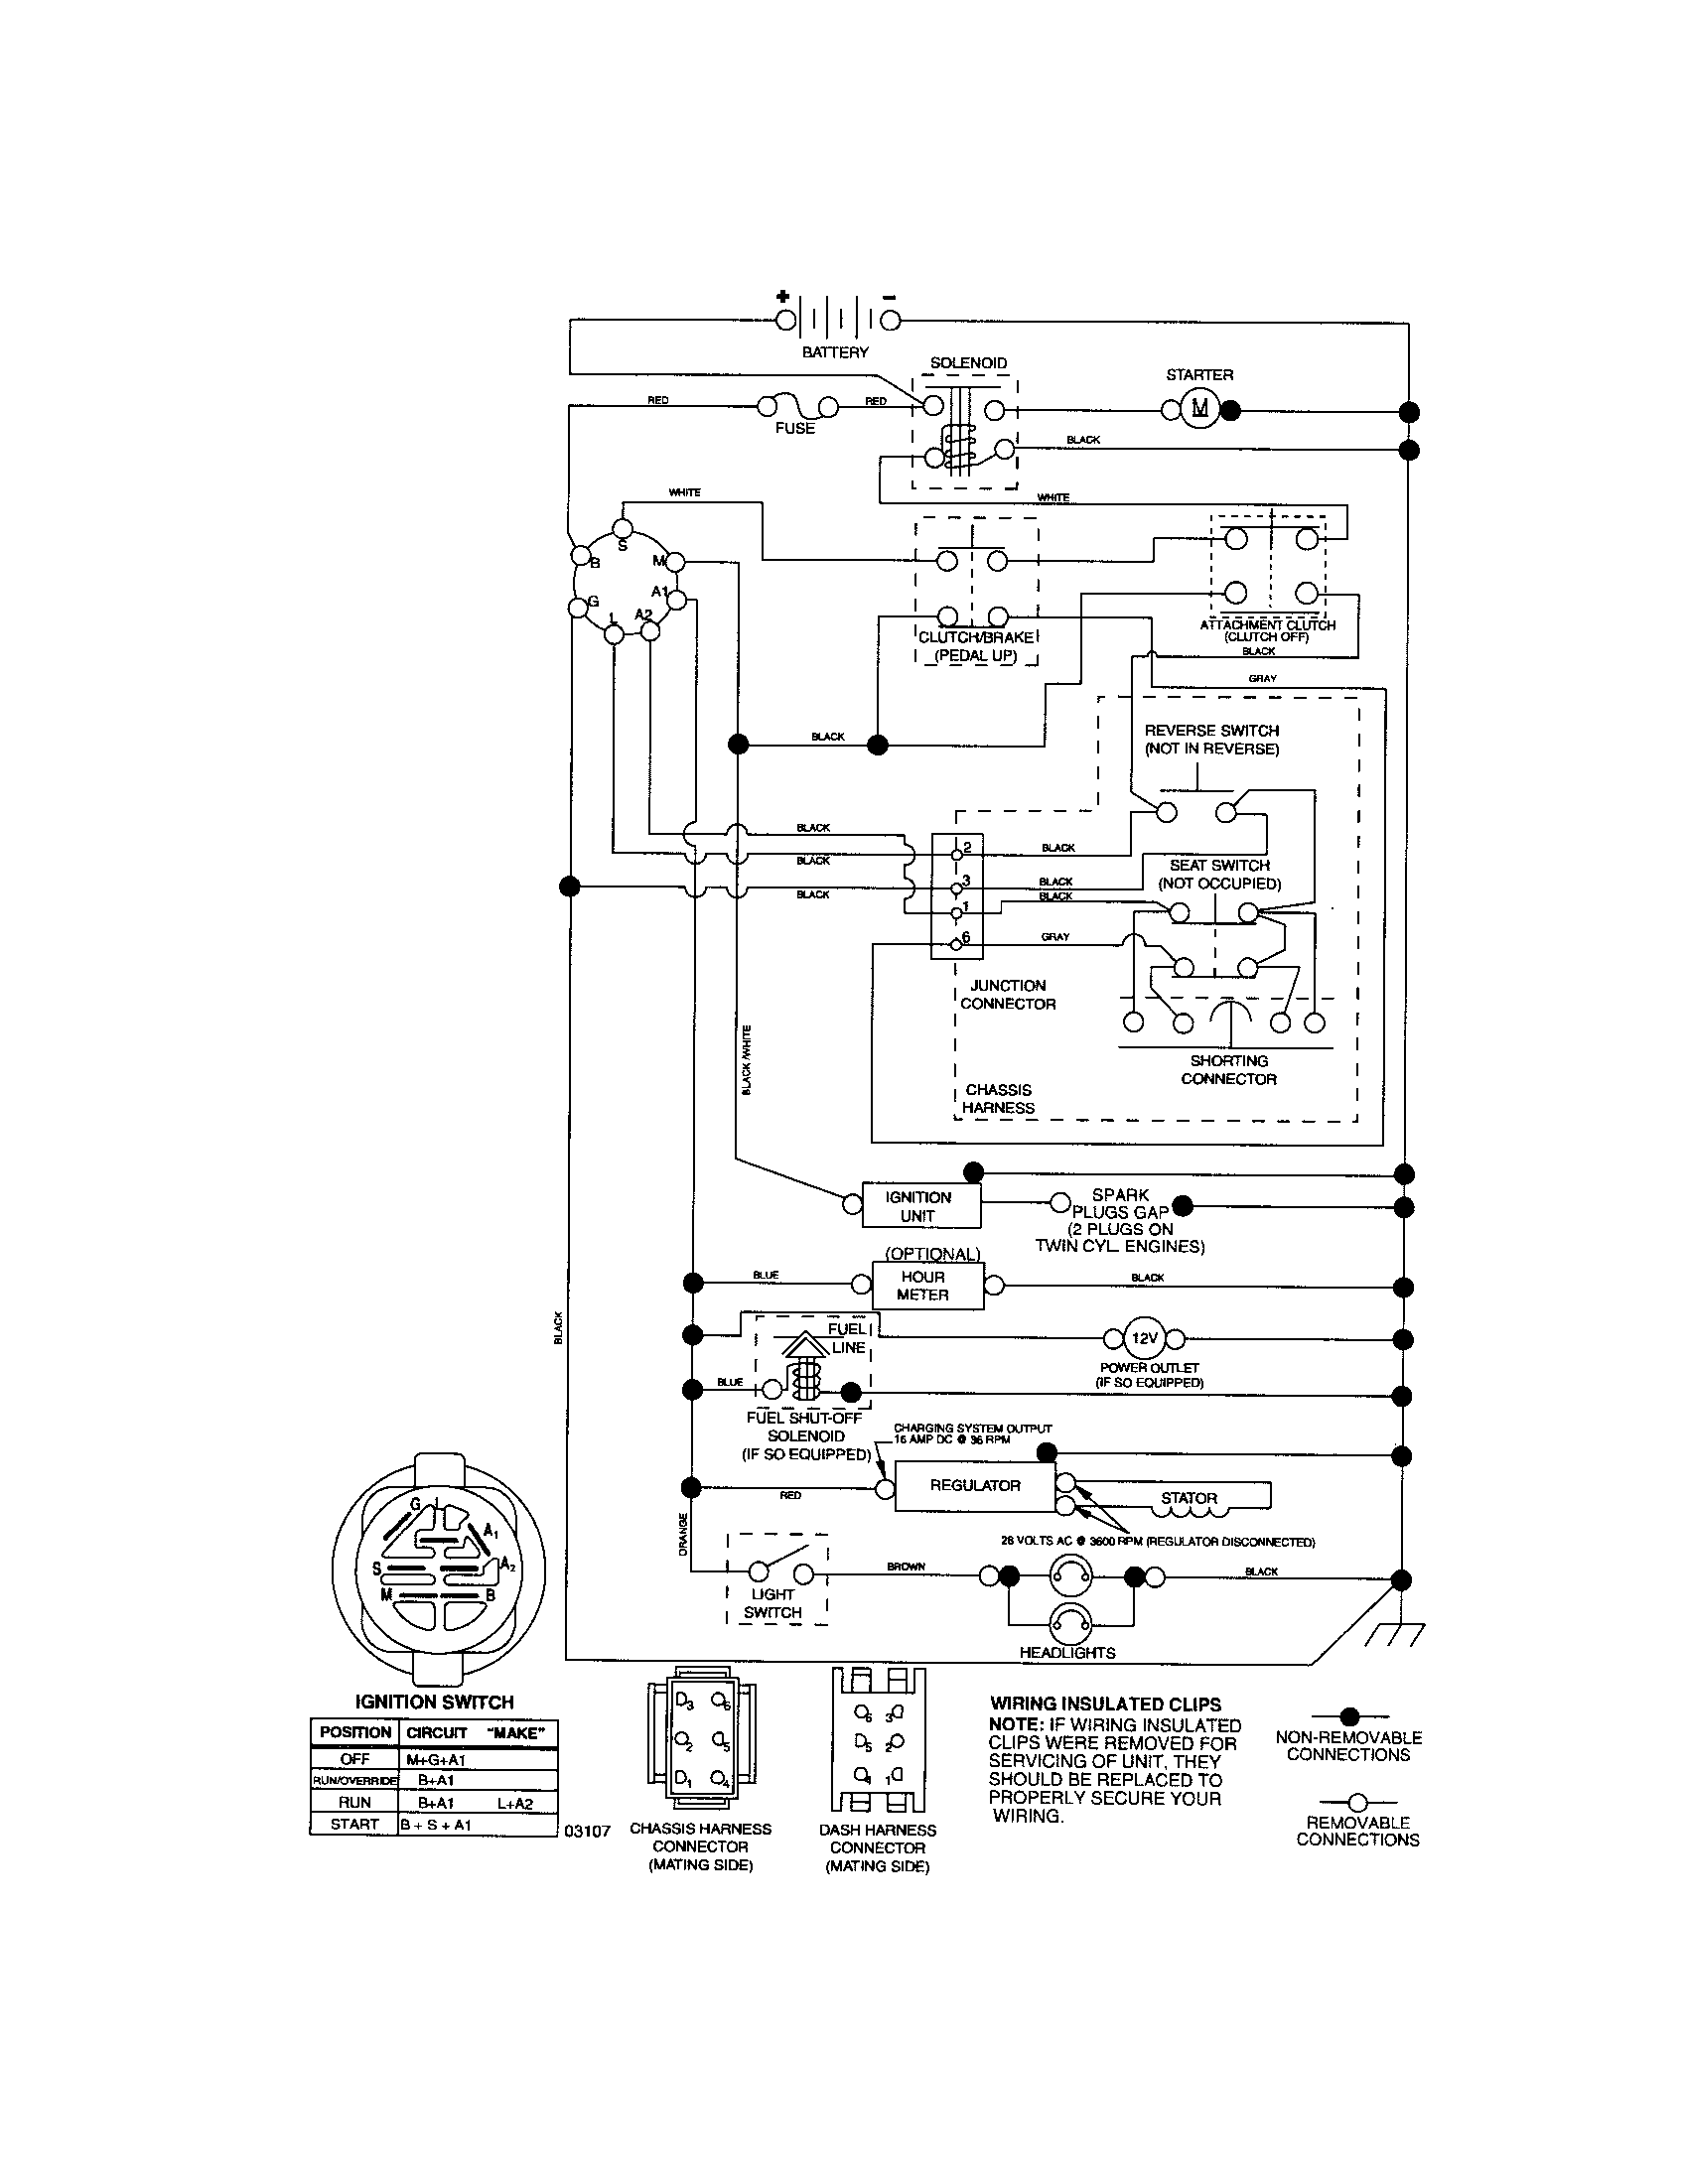 Hot Rod Wiring Diagram likewise P 0900c15280037eef further Downloadable manuals moreover 2010 10 25 004837 Starter With Ford Solenoid Wiring Diagram additionally Bypassing The   Gauge Question About The Mad Electrical Method. on basic ford solenoid wiring diagram